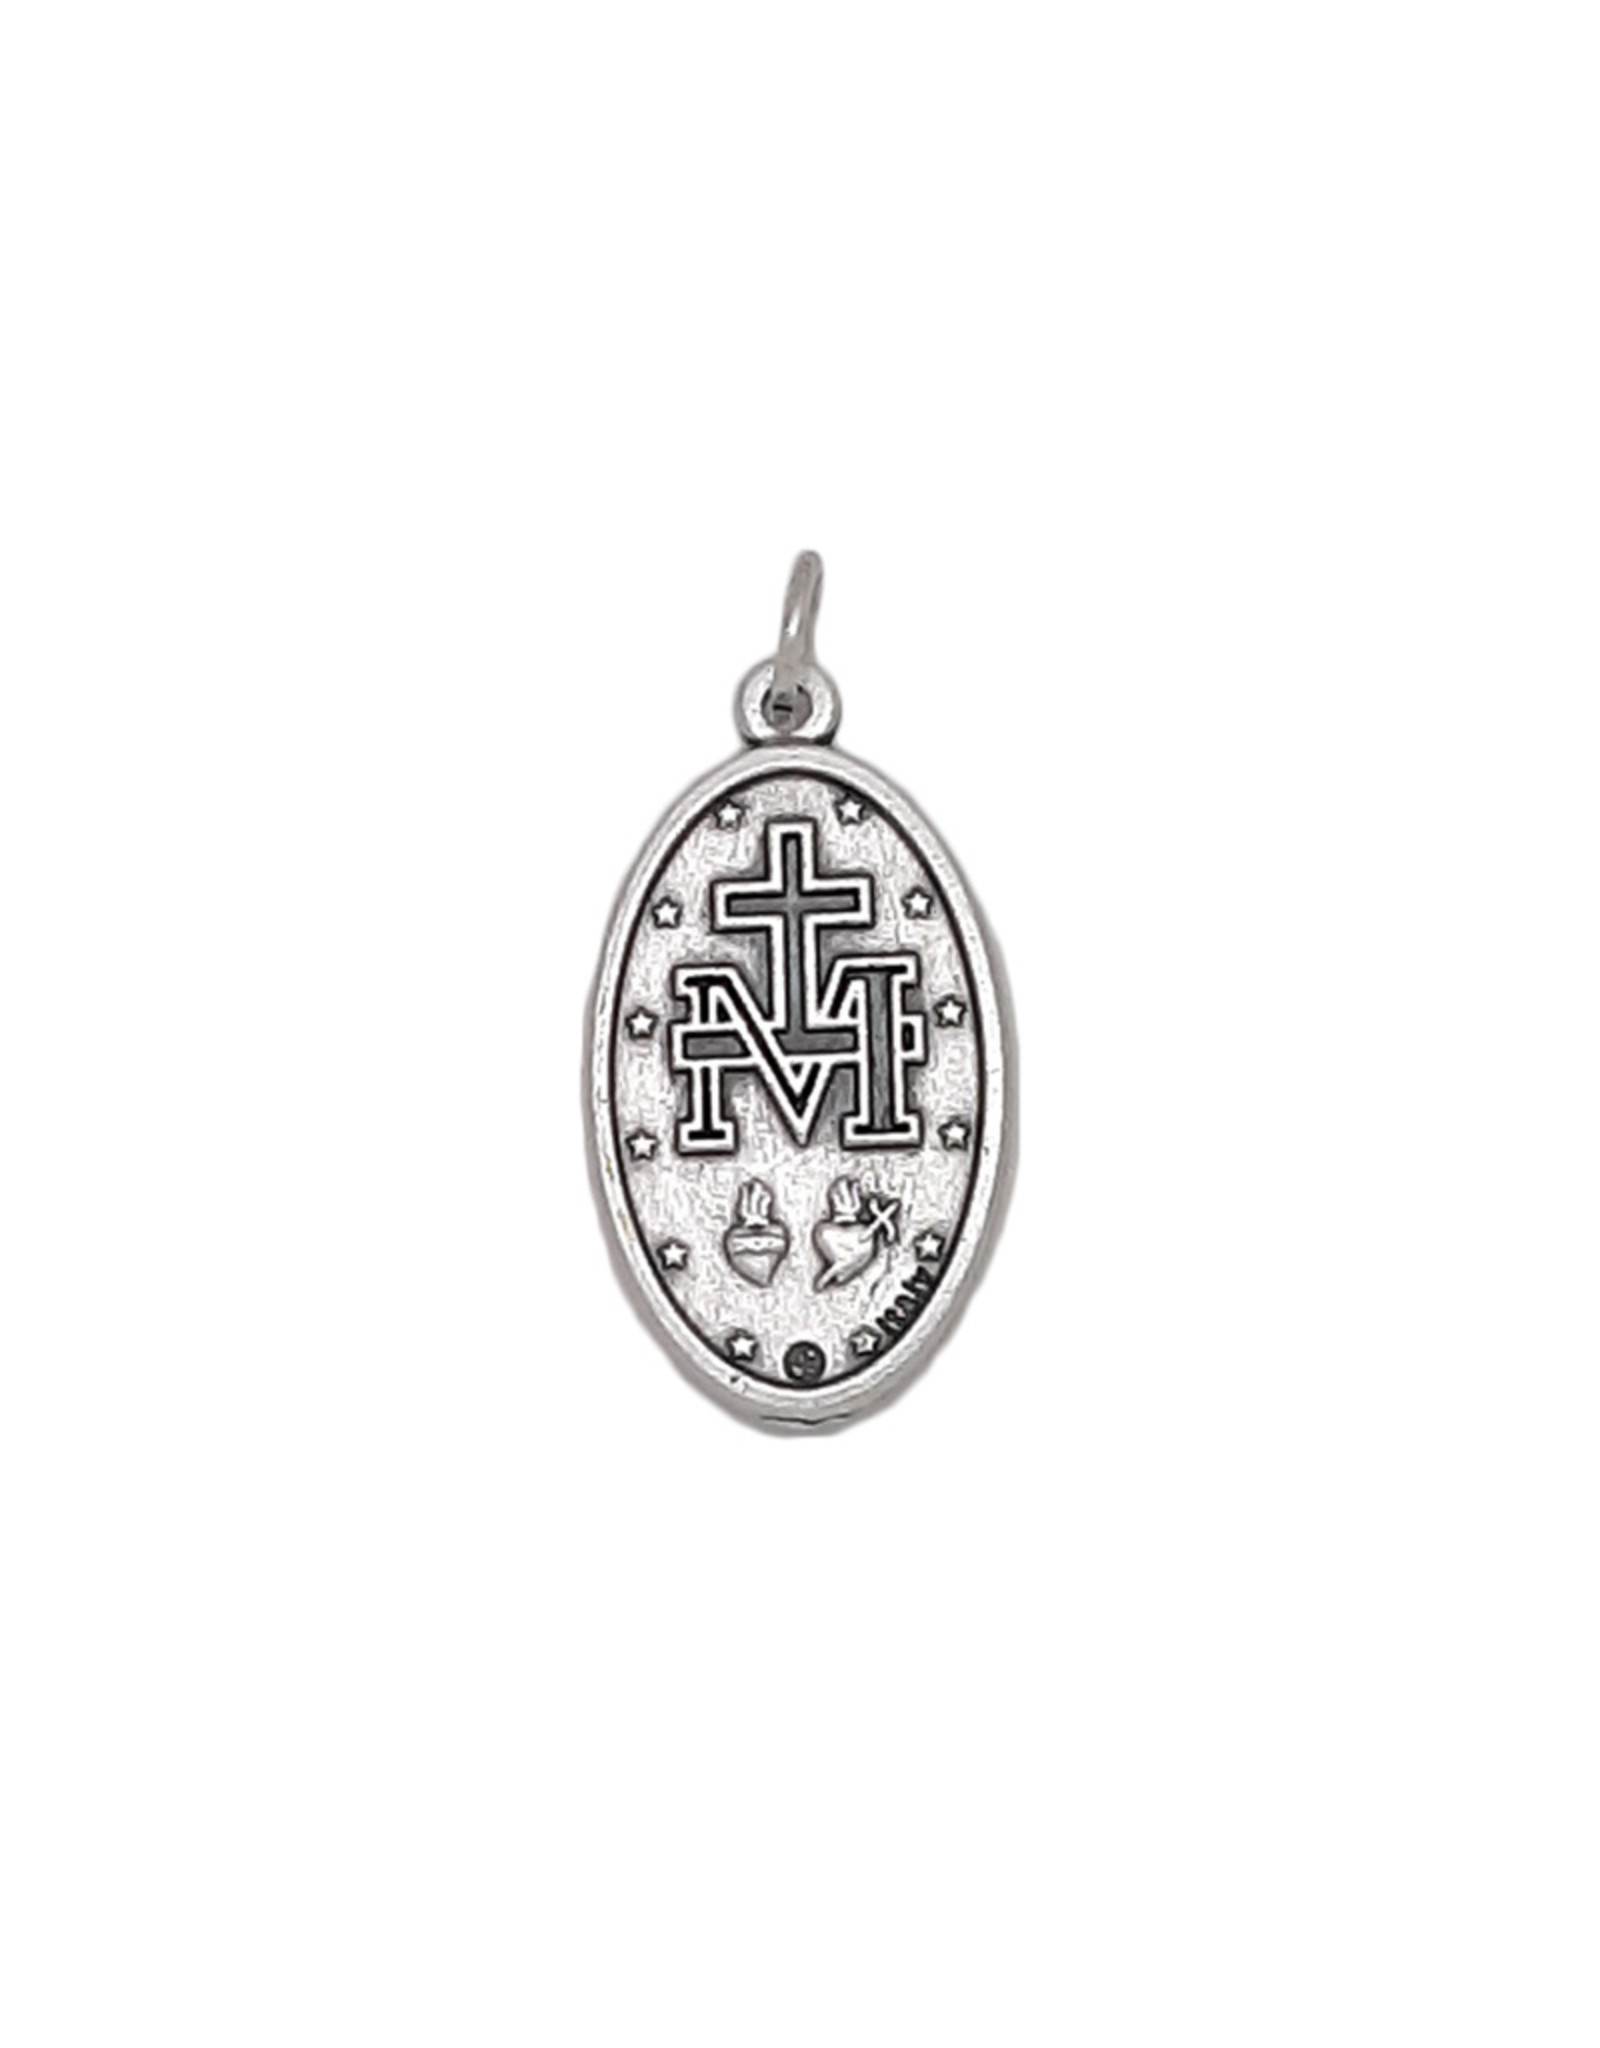 Miraculous Medal with blue enamel